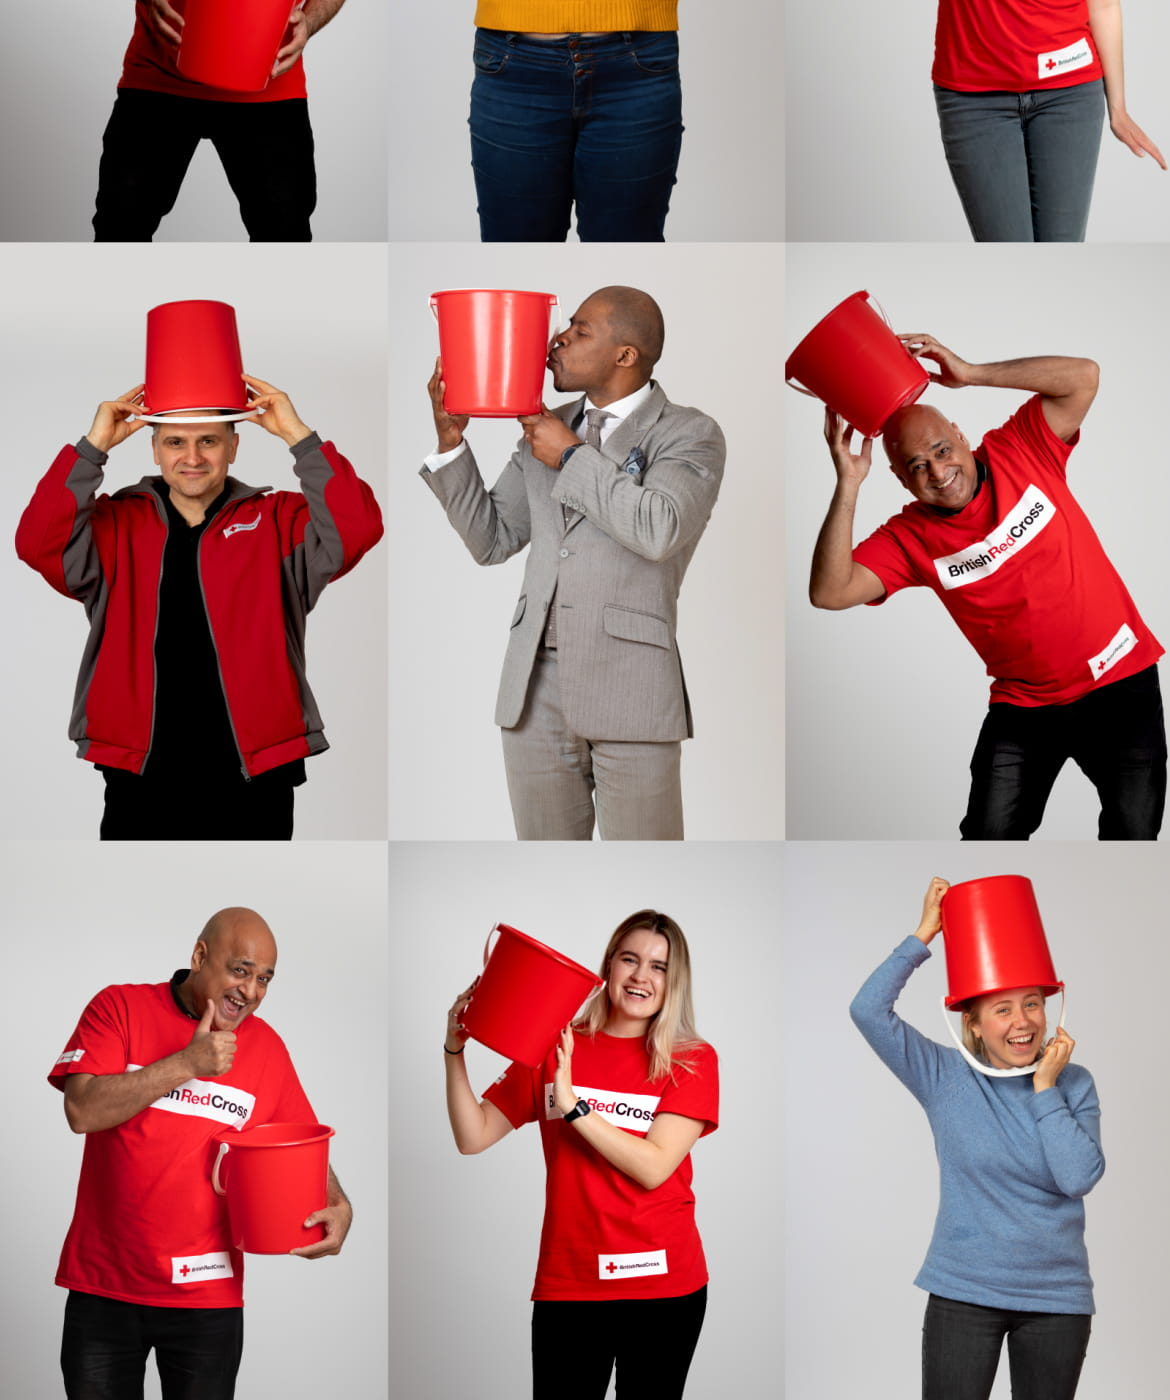 Red Cross Week - let#s shake things up this red cross week